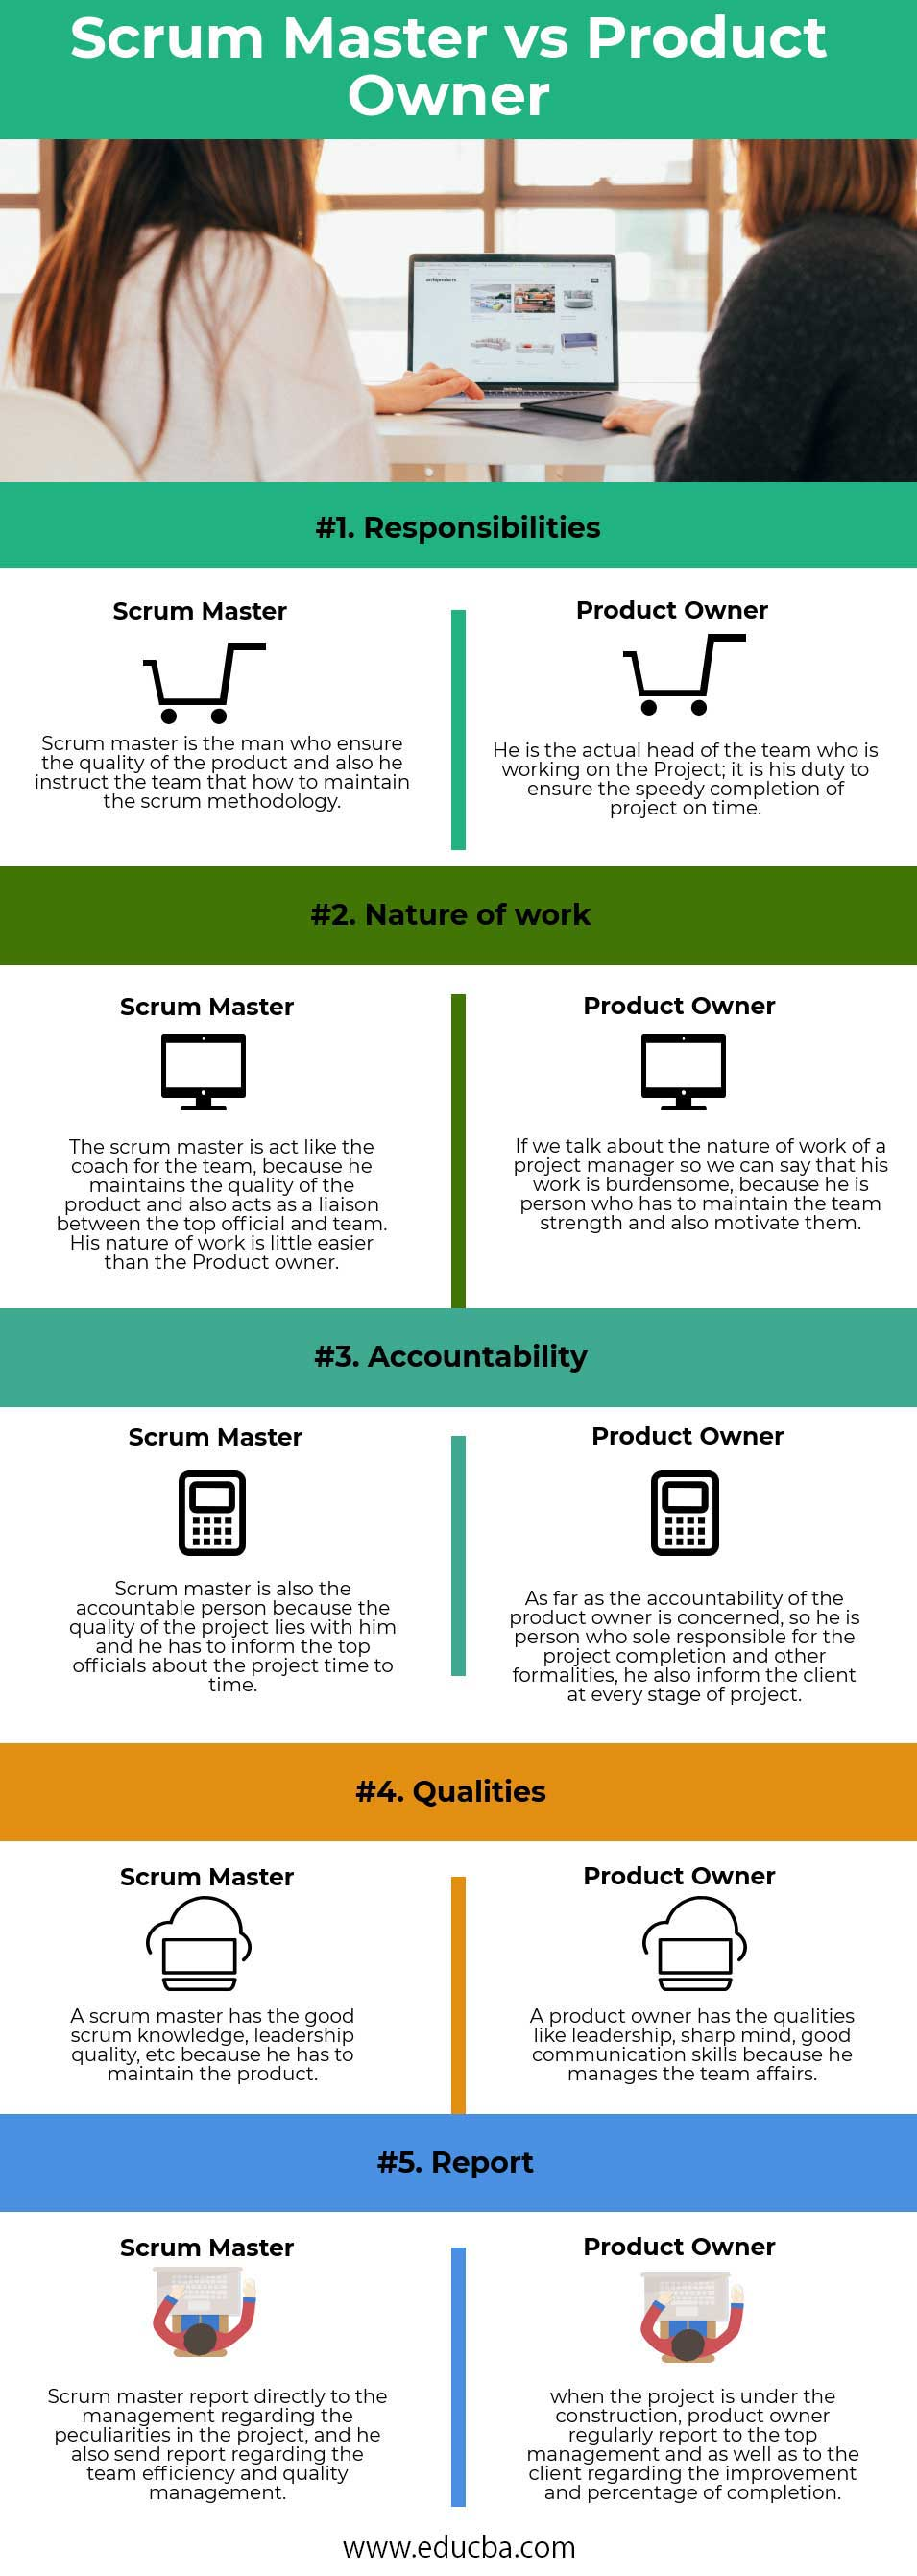 Scrum Master vs Product Owner Infographic